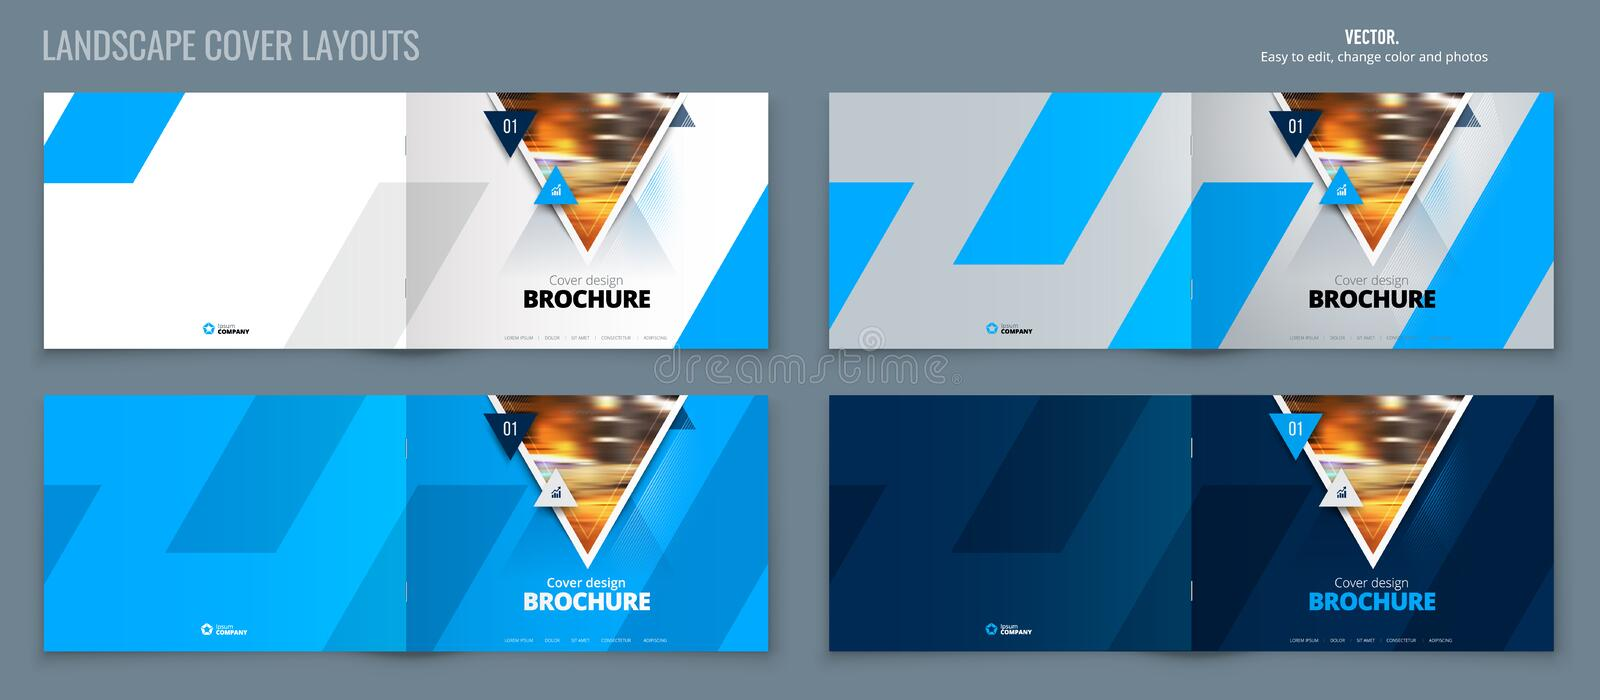 Blue landscape Catalog template layout, cover design annual report, magazine, flyer or booklet in A4 with triangle. Geometric shapes. Vector Illustration for vector illustration